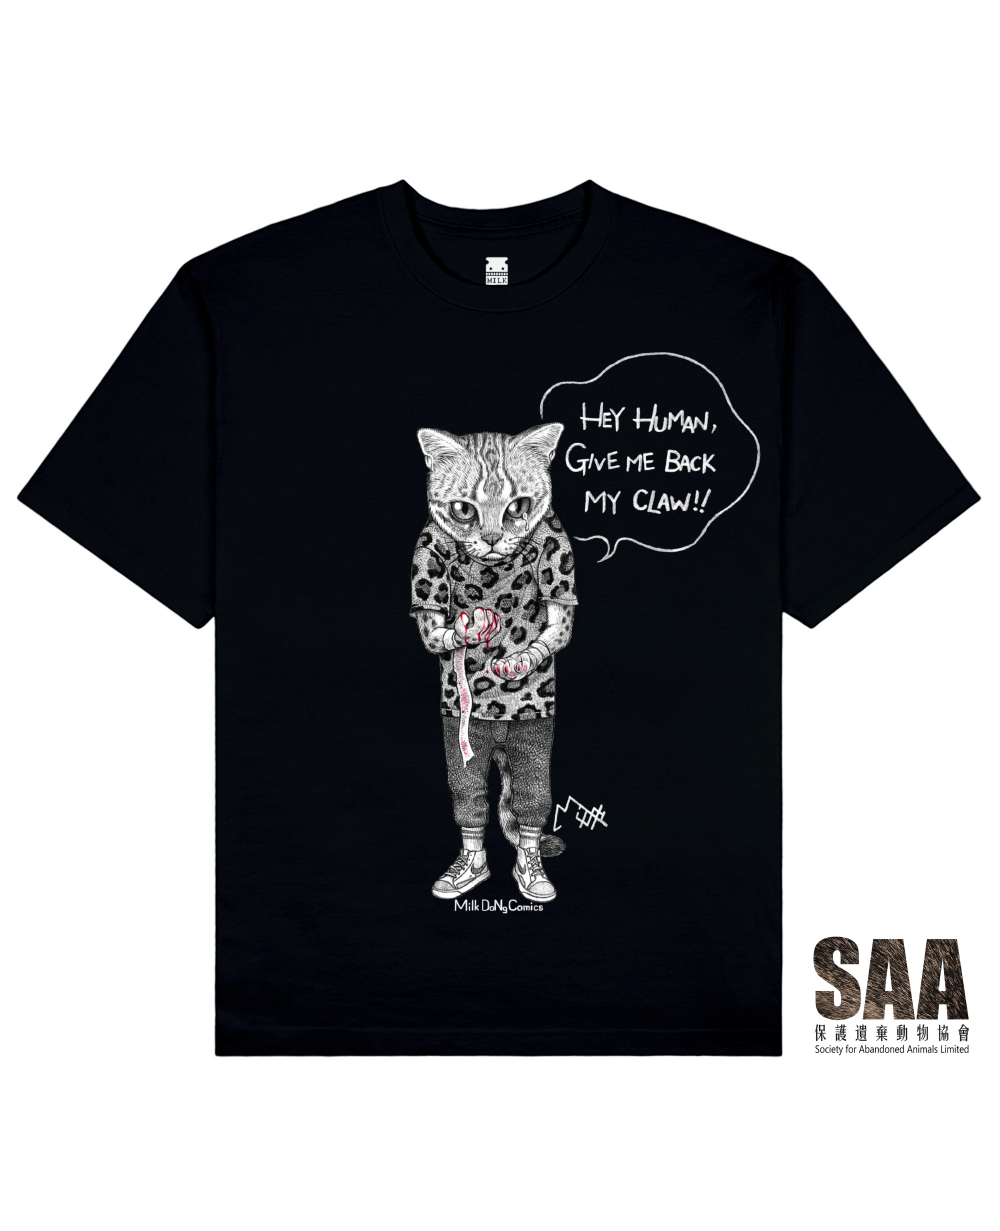 CLAWLESS CAT Printed T-Shirt in Black - T-Shirts - Milk DoNg Comics - BRANMA